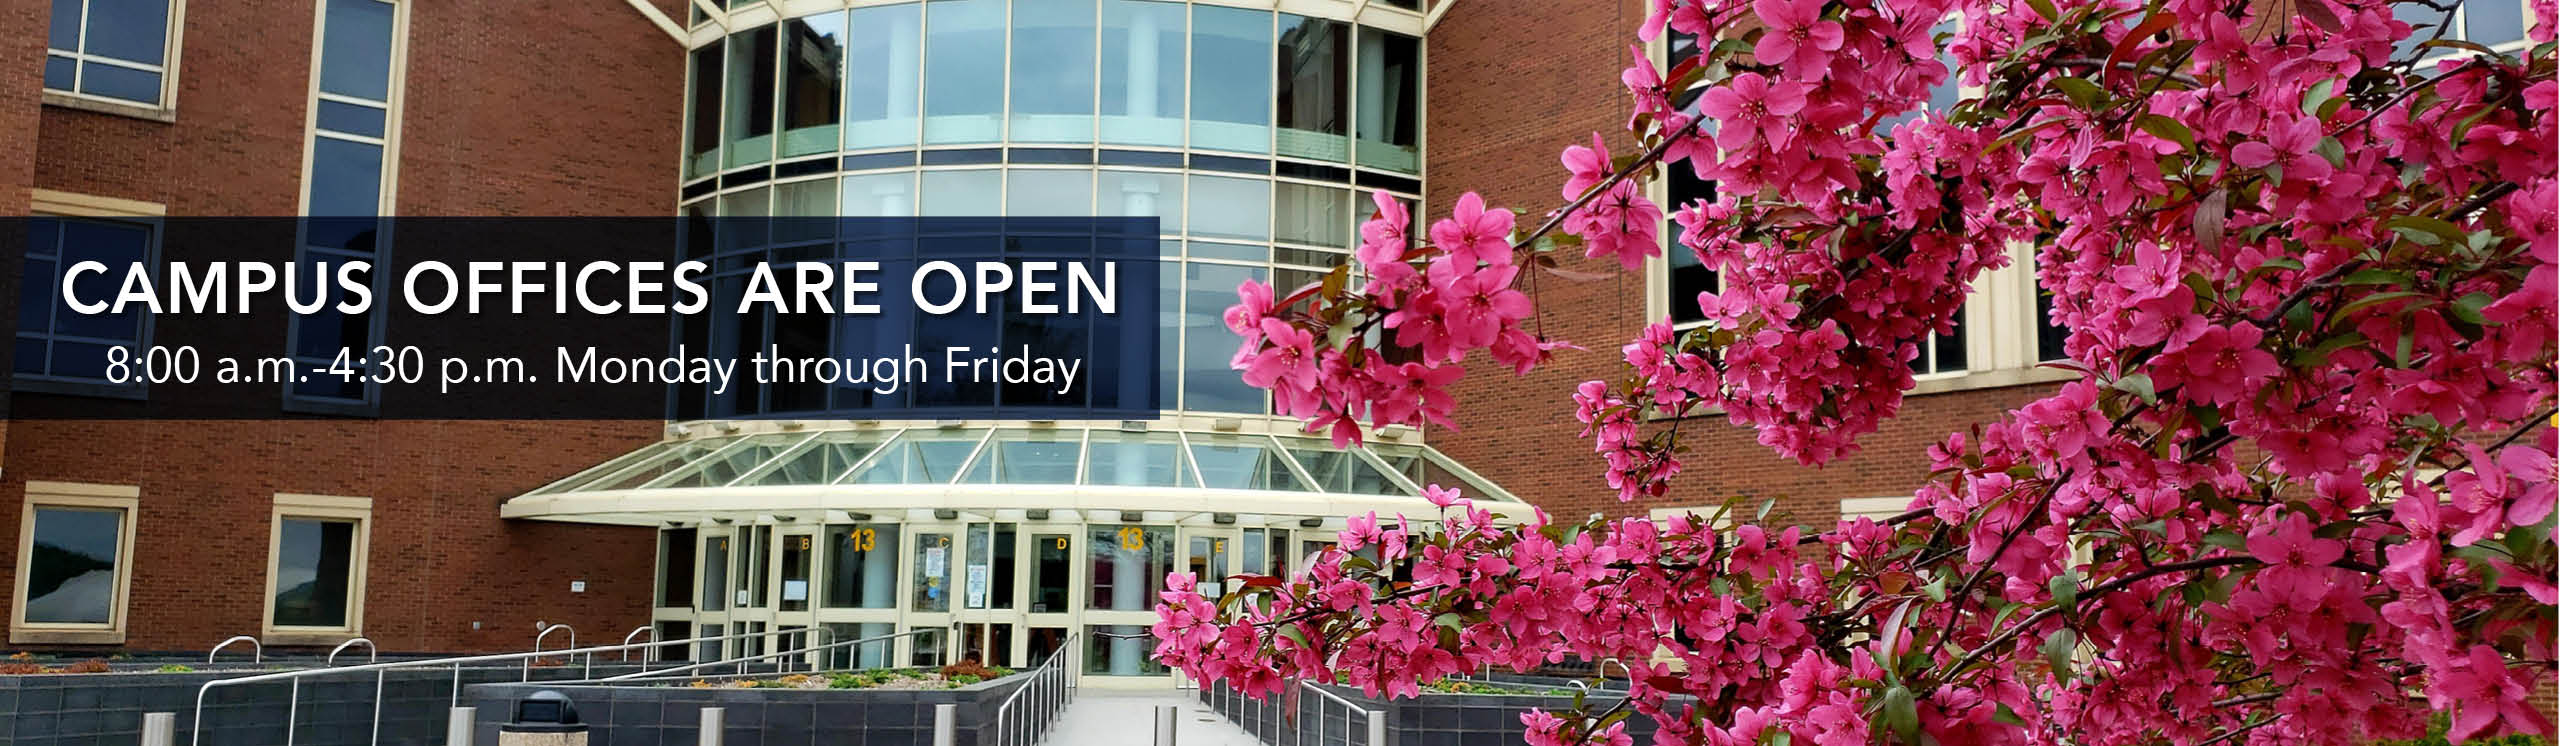 Campus Offices Open